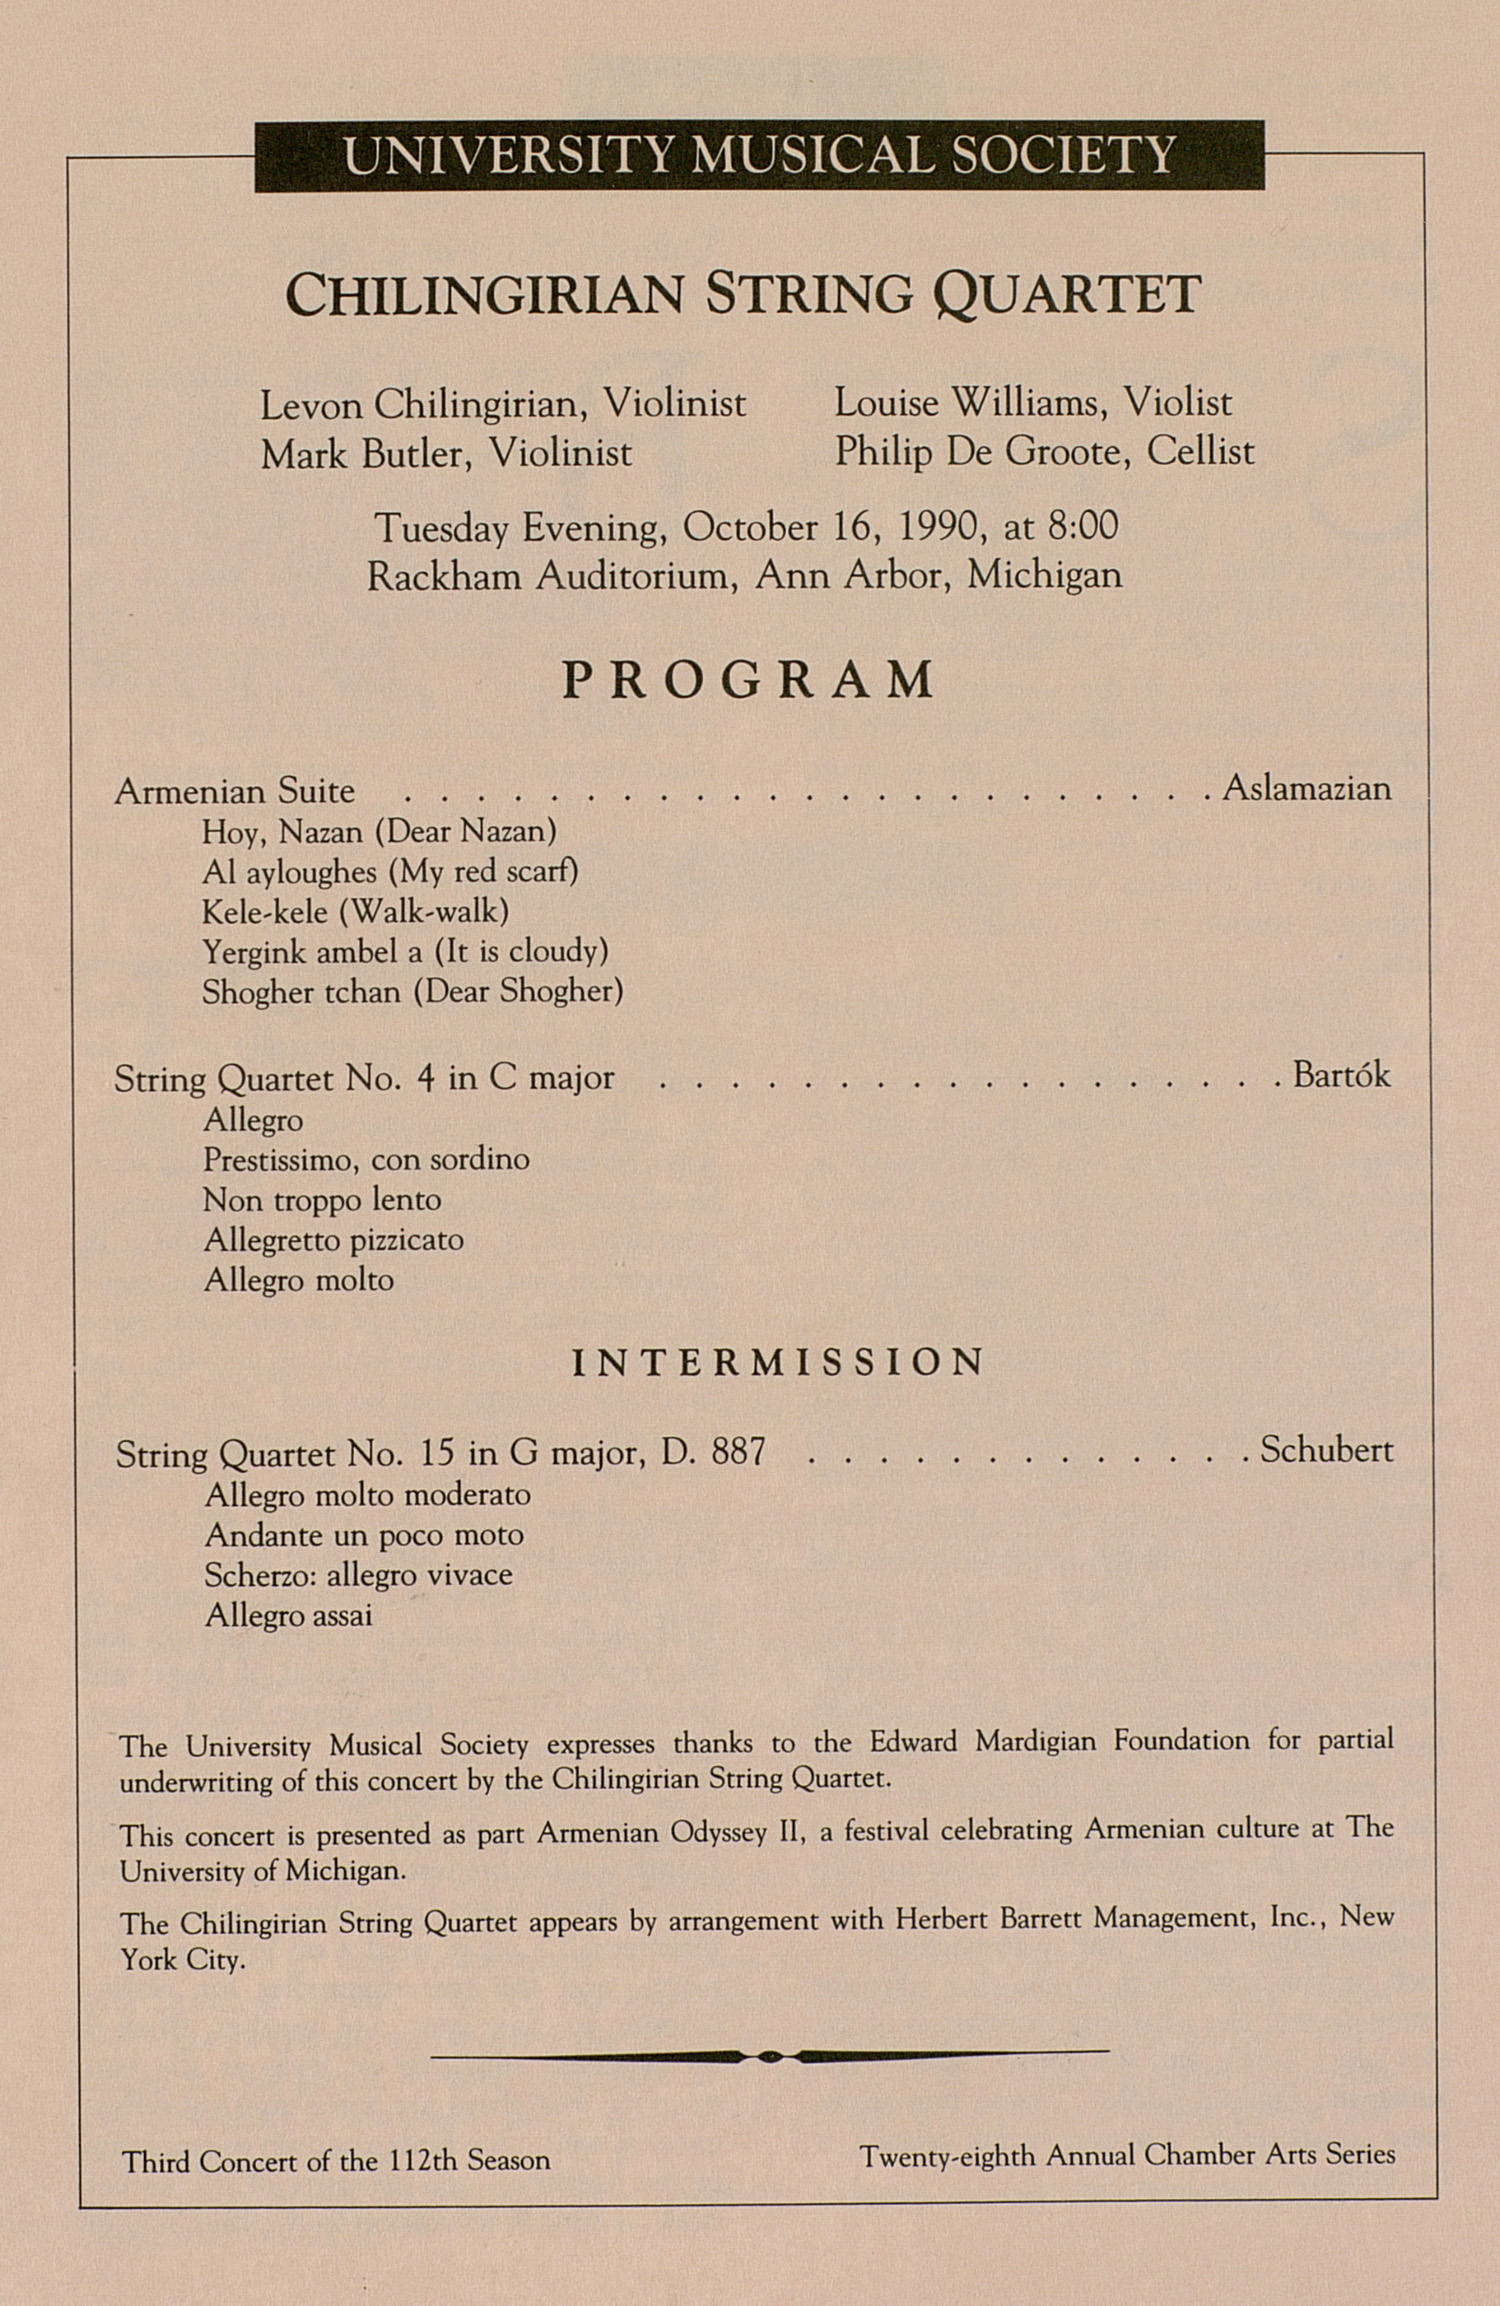 UMS Concert Program, October 16, 1990: Chilingirian String Quartet --  image